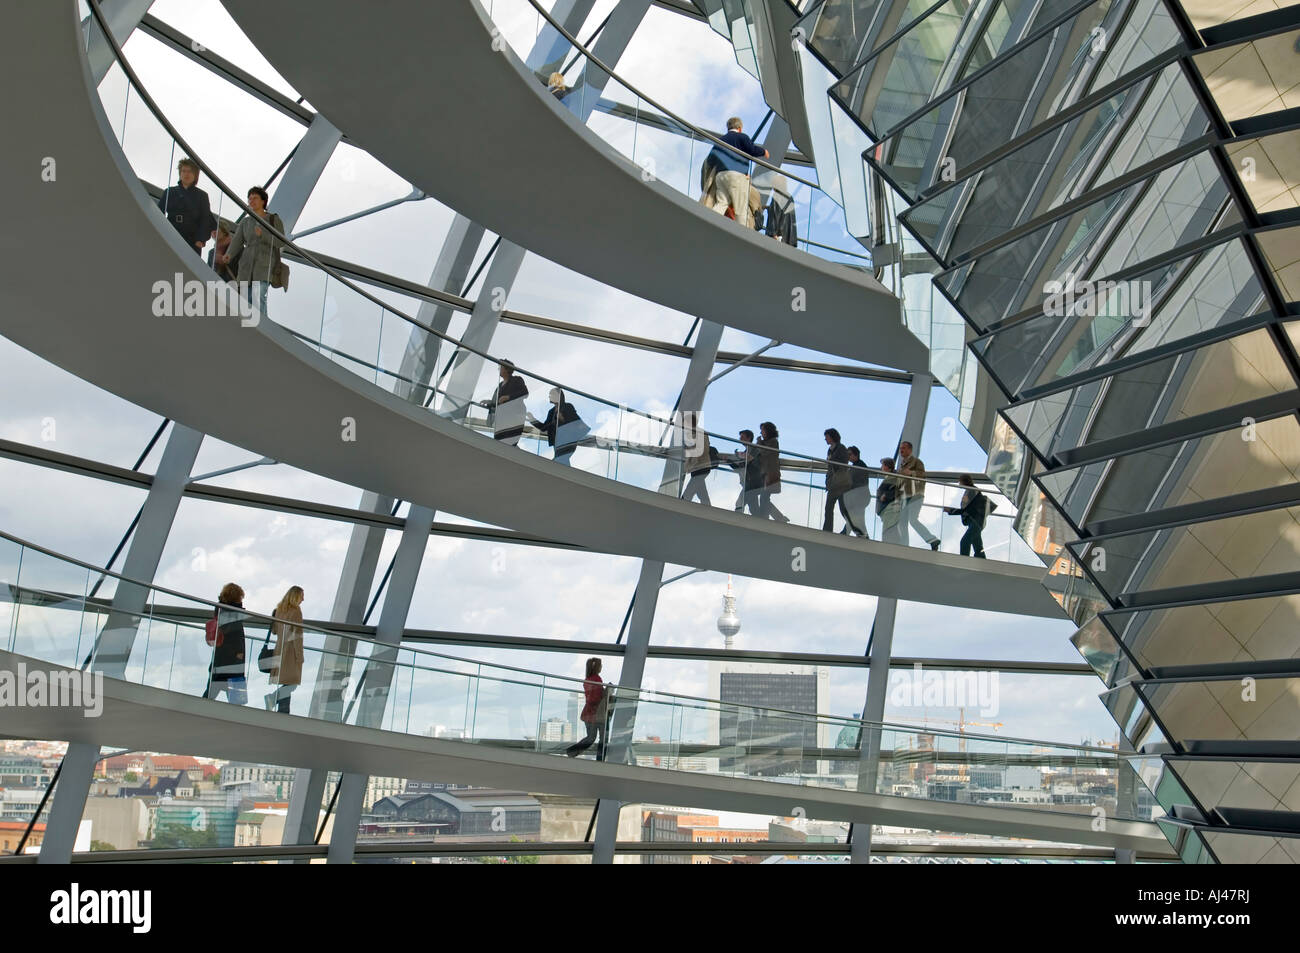 A wide angle view of tourists on the walkway inside the dome on top of the Reichstag - the german parliment building. - Stock Image